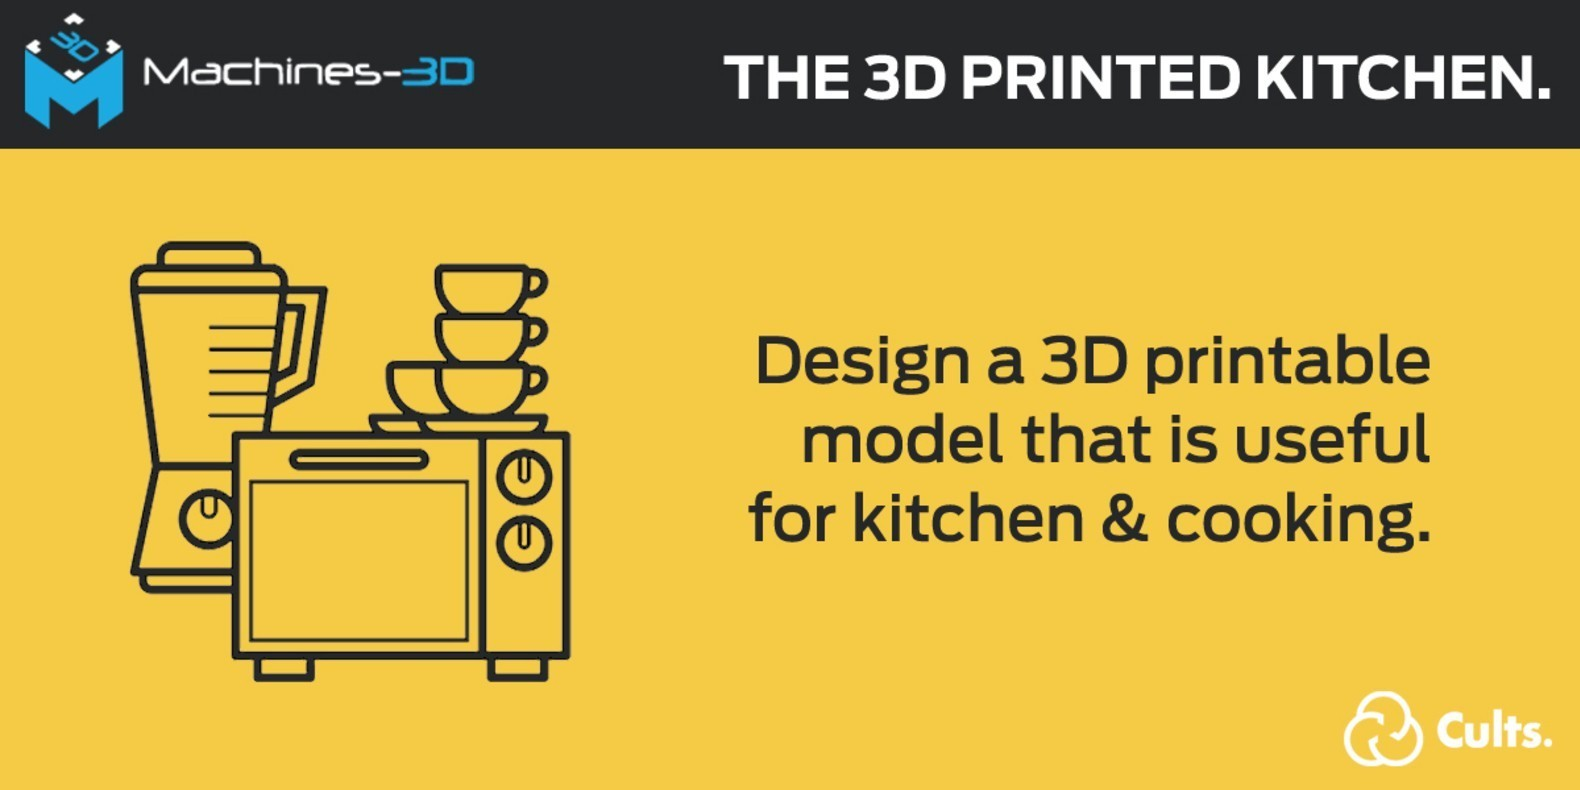 Contest 3D Printing Kitchen Machines-3D